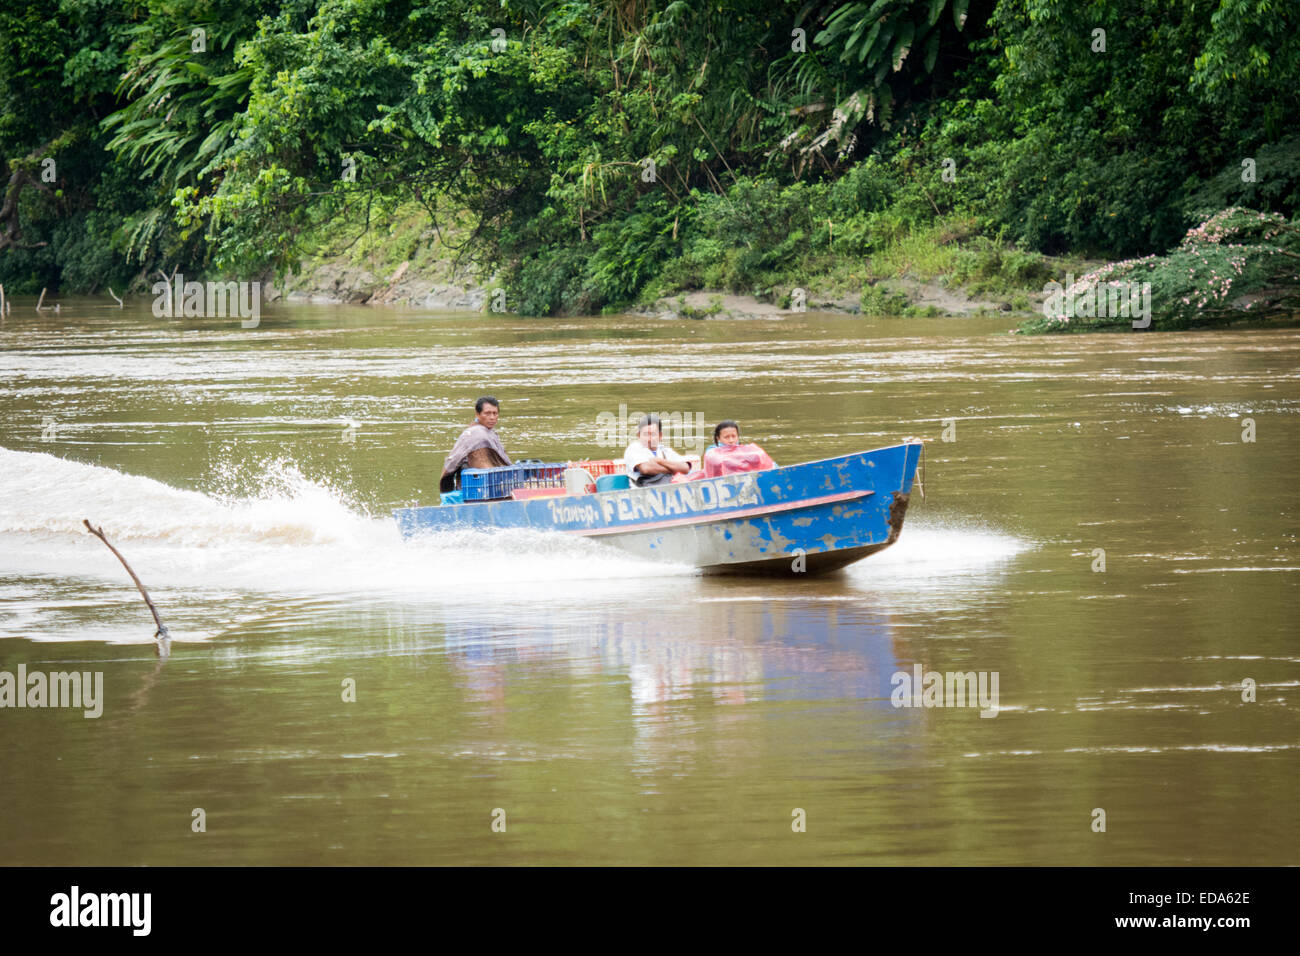 Fast Motor Launch with People on River of Amazon Region of Peru - Stock Image